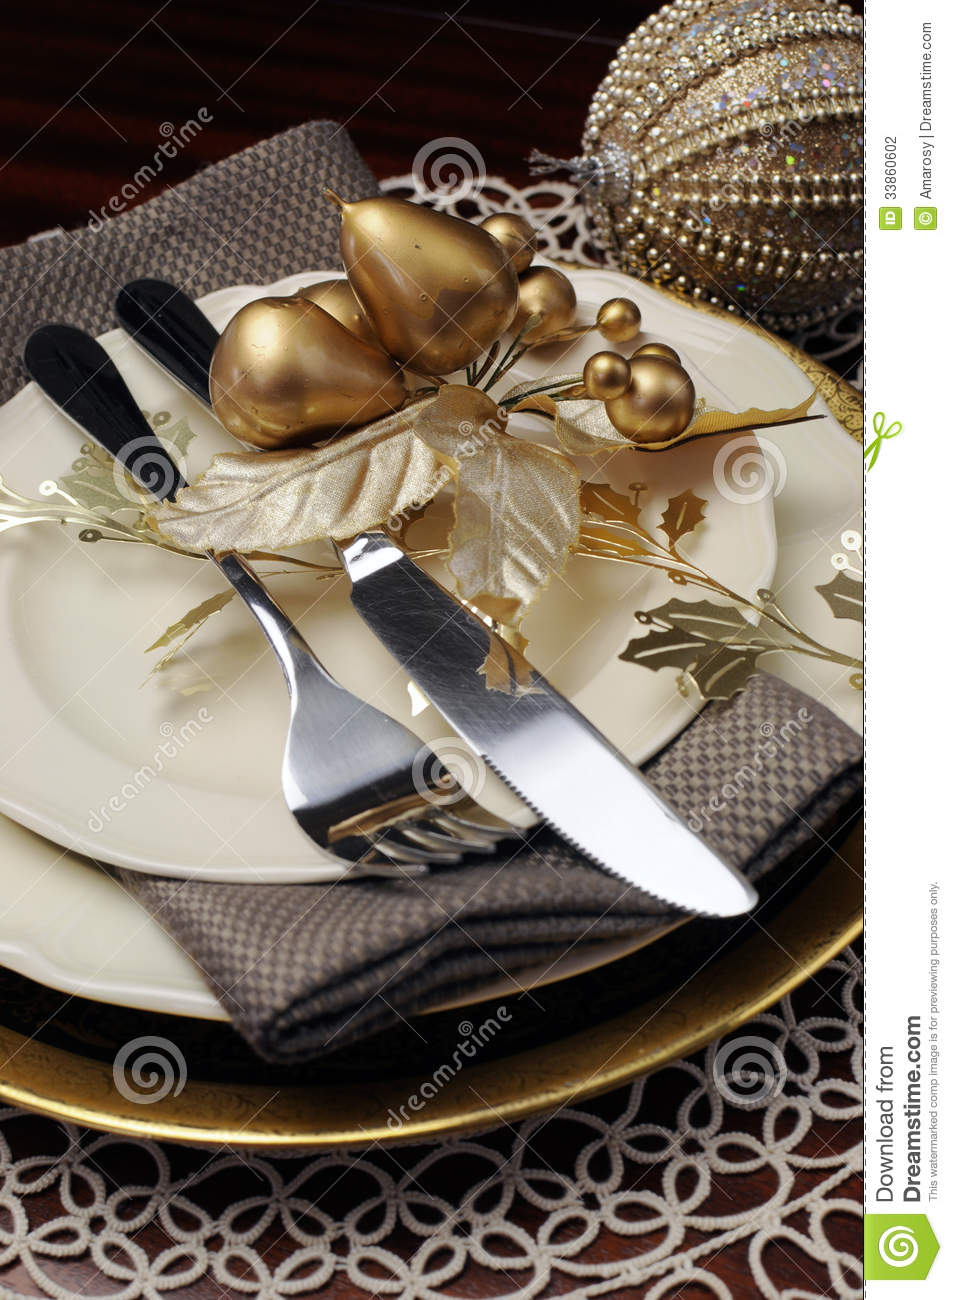 Gold Theme Christmas Dinner Table Setting Close Up On